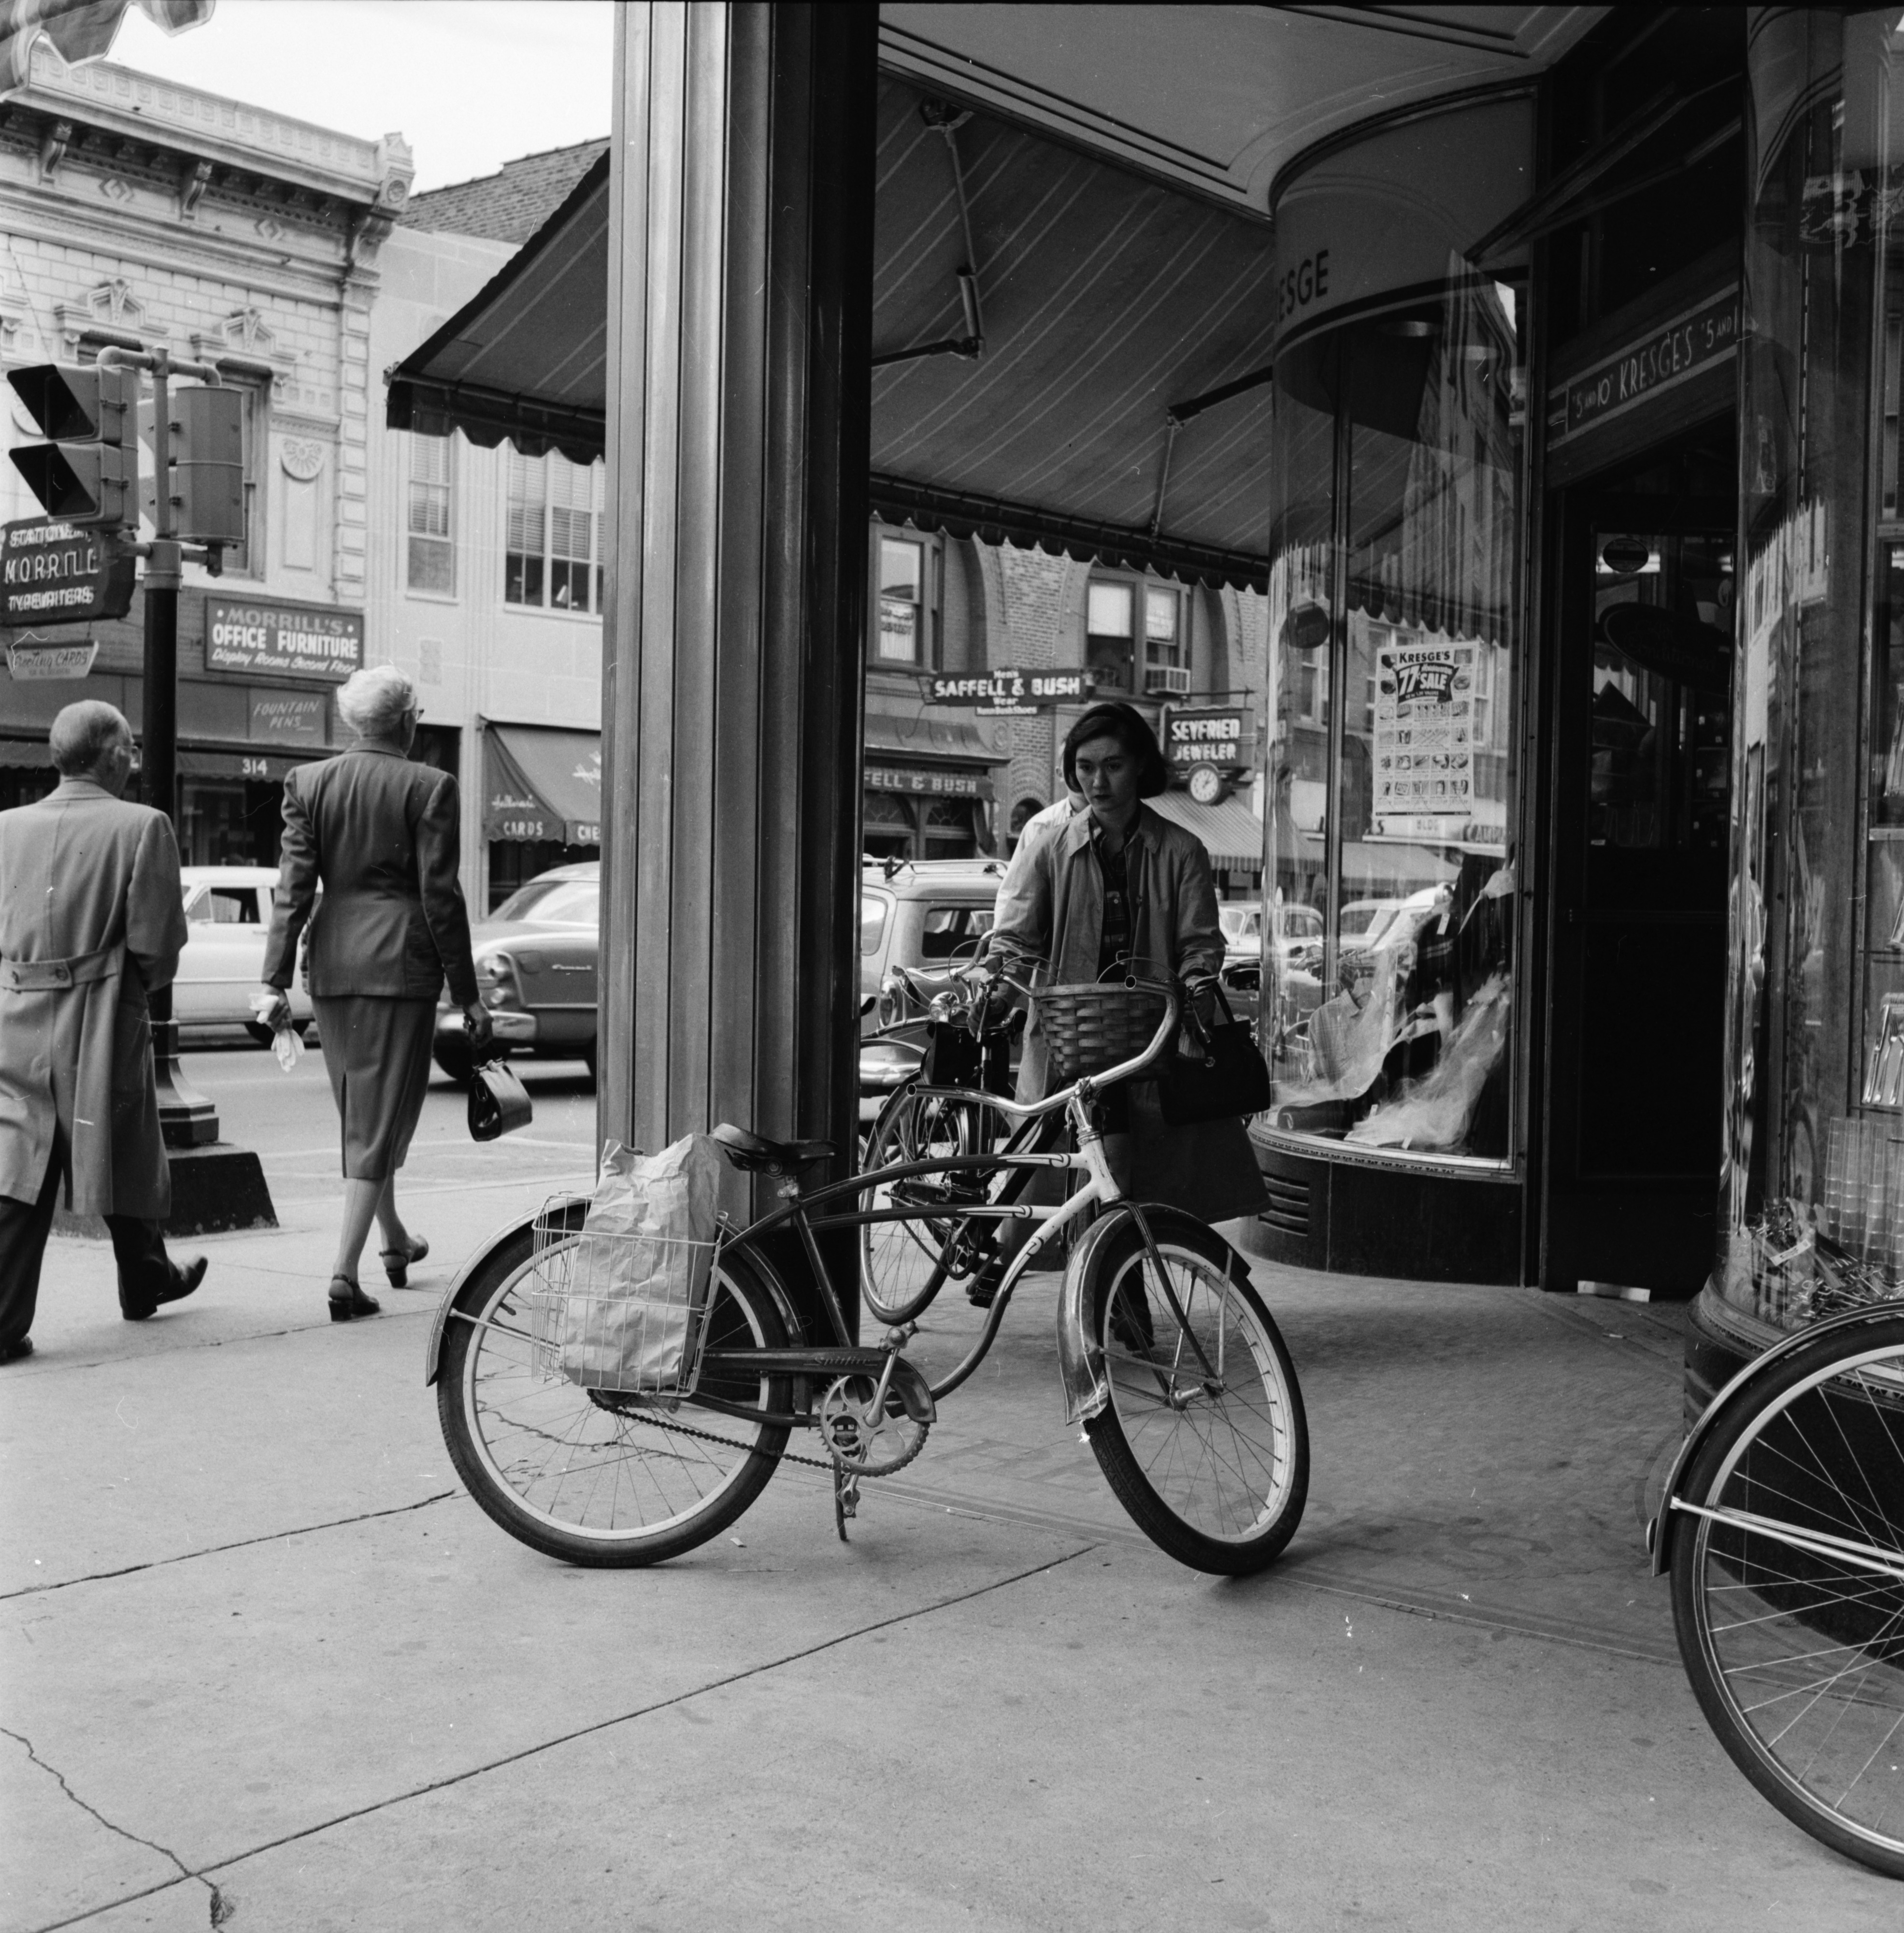 Bicycles parked along State Street on University of Michigan campus, September 1956 image